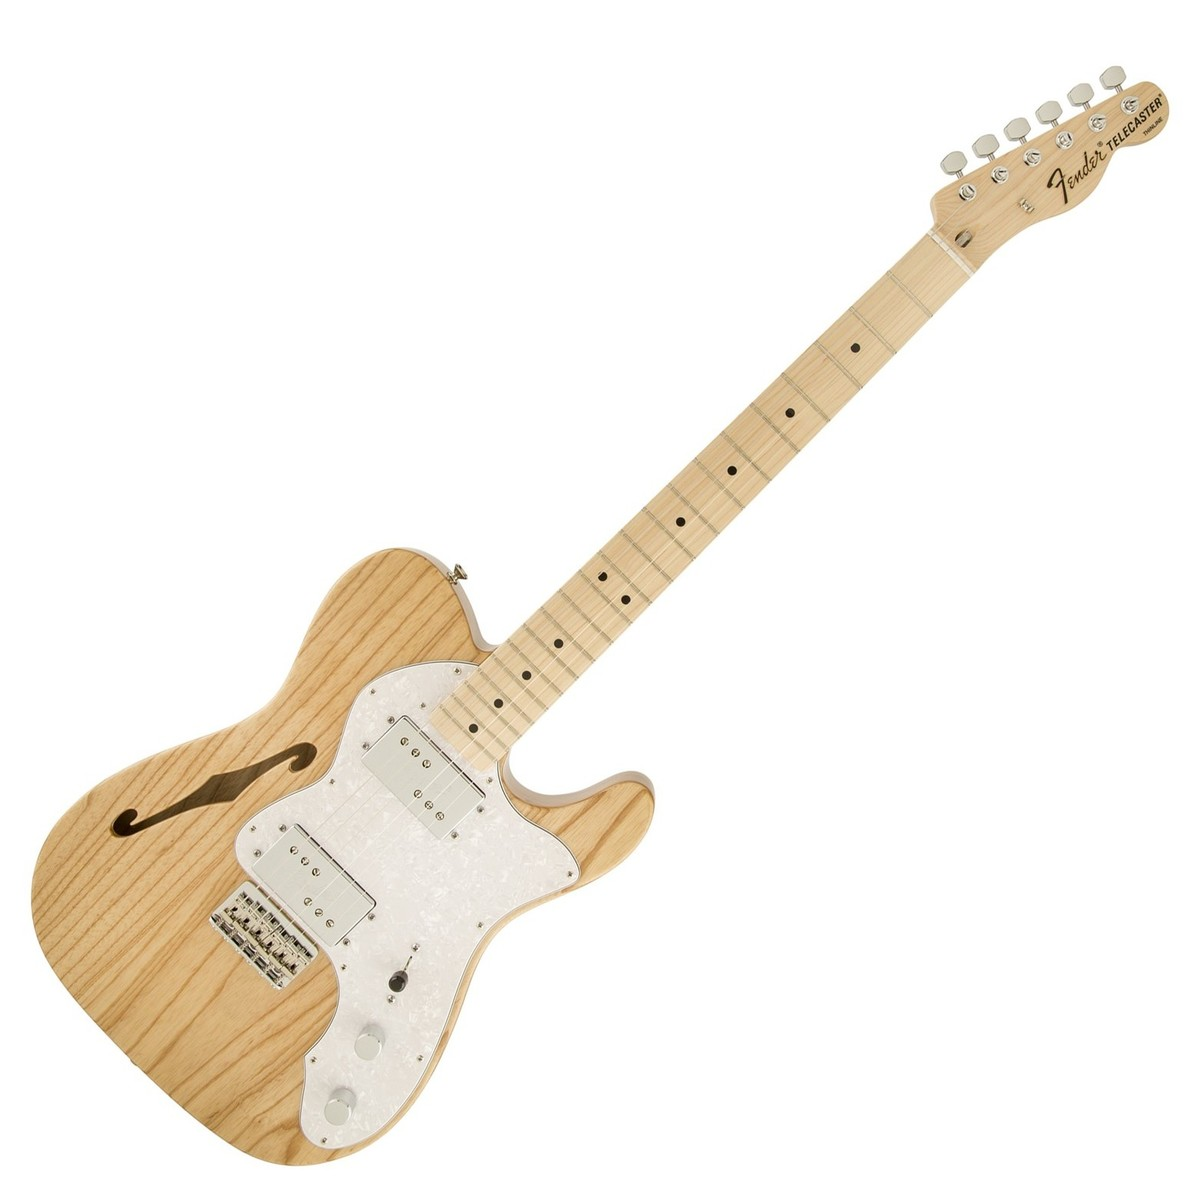 fender classic series 39 72 telecaster thinline mn natural at gear4music. Black Bedroom Furniture Sets. Home Design Ideas